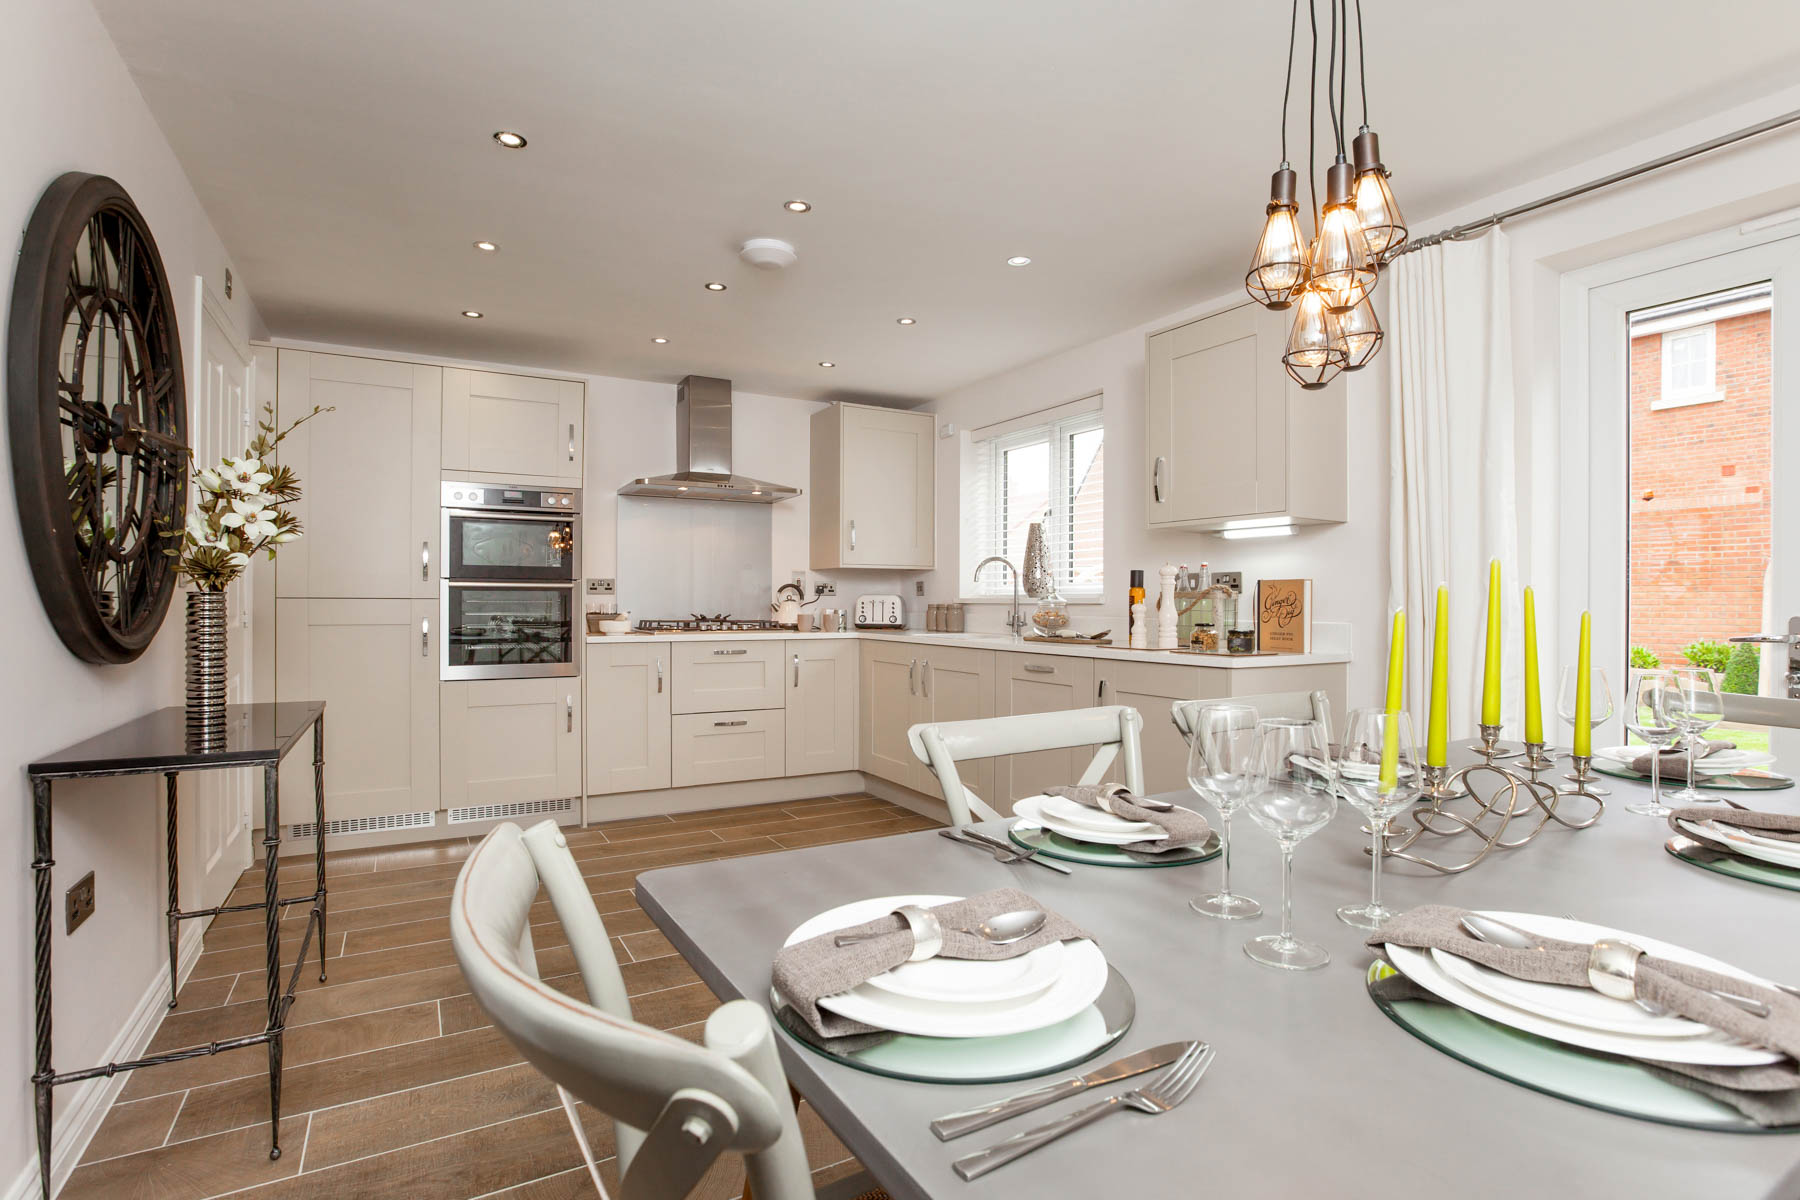 Taylor Wimpey Exeter - Sherford - Willow example kitchen